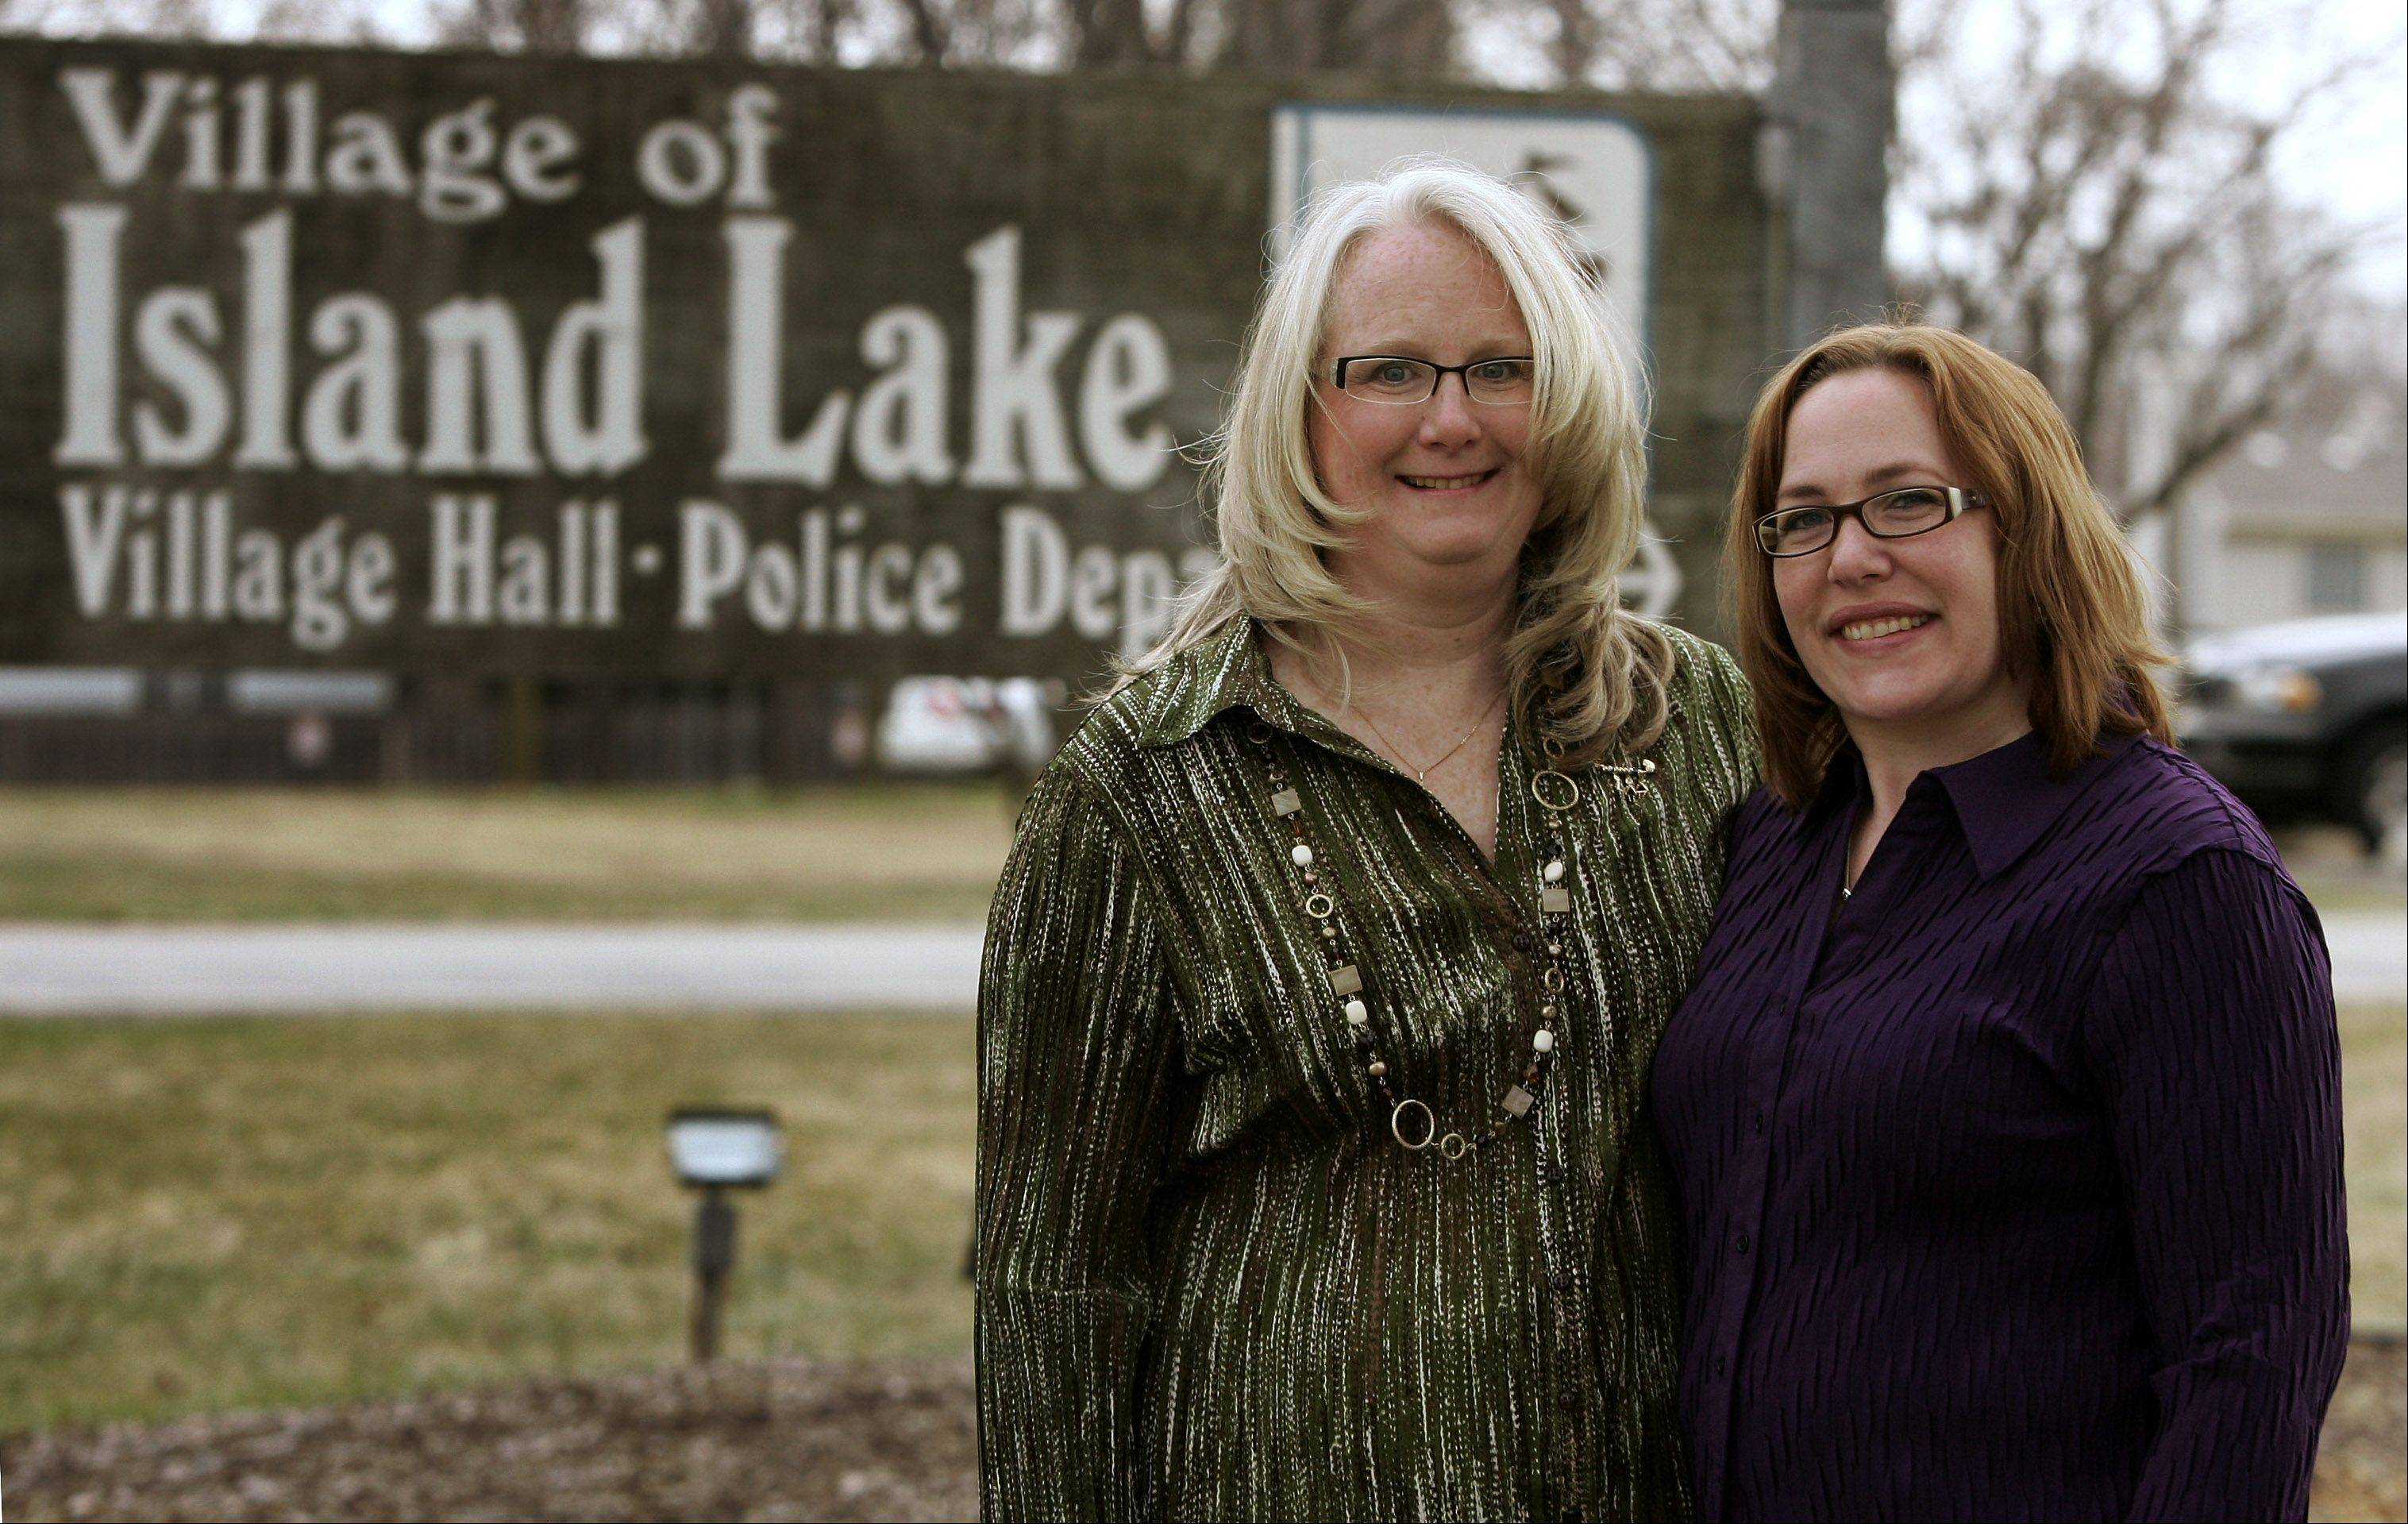 New trustees Thea Morris, left, and Shannon Fox have helped defeat recent veto overrides in Island Lake.